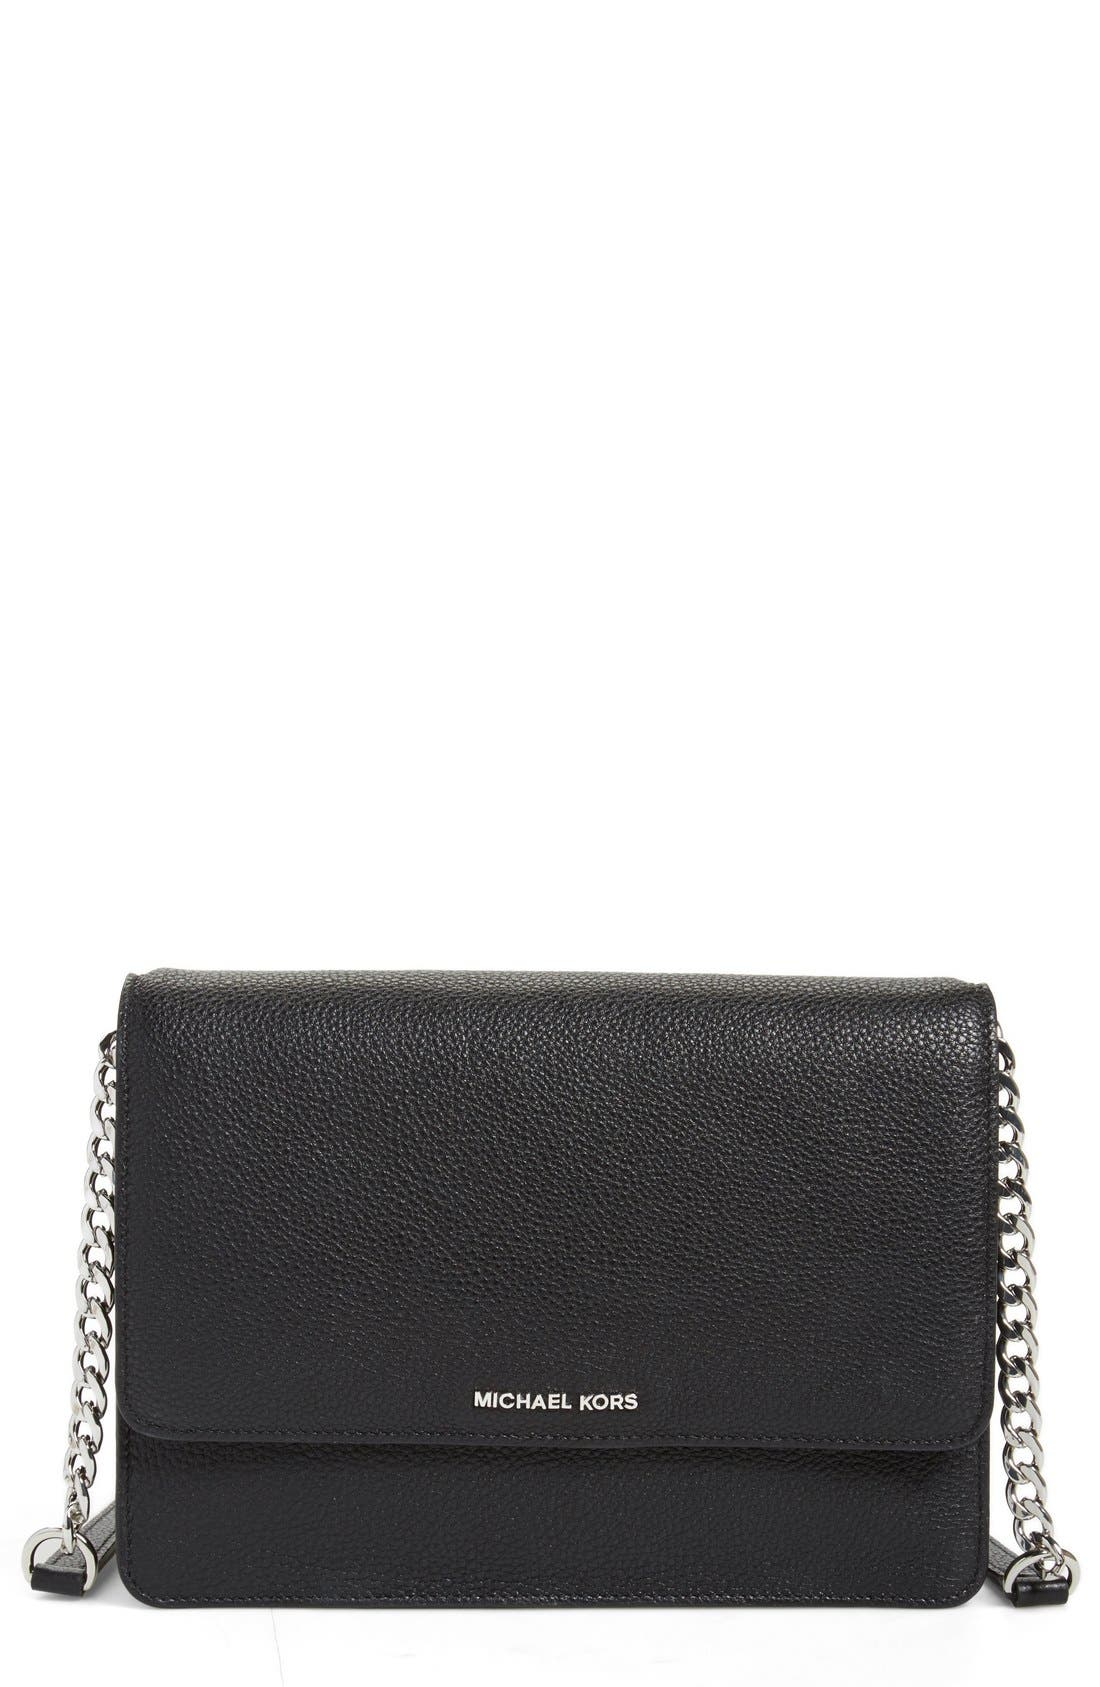 'Large Daniela' Leather Crossbody Bag,                         Main,                         color, Black/ Silver